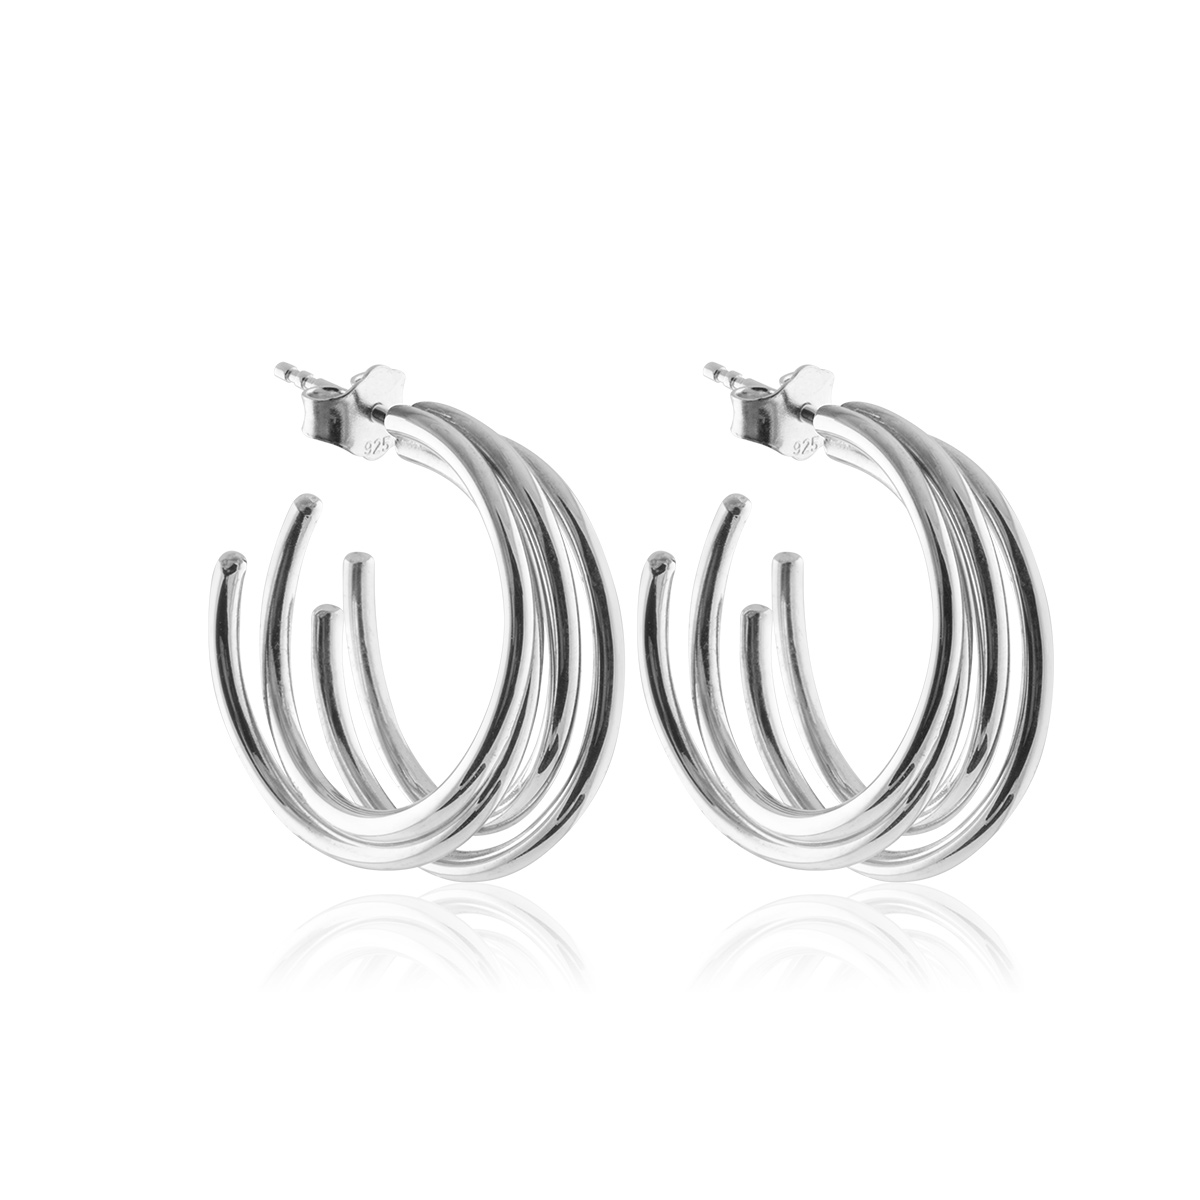 Chaos_hoops_small_silverpla_terad_ma_ssing_1290_sek_sophie_by_sophie